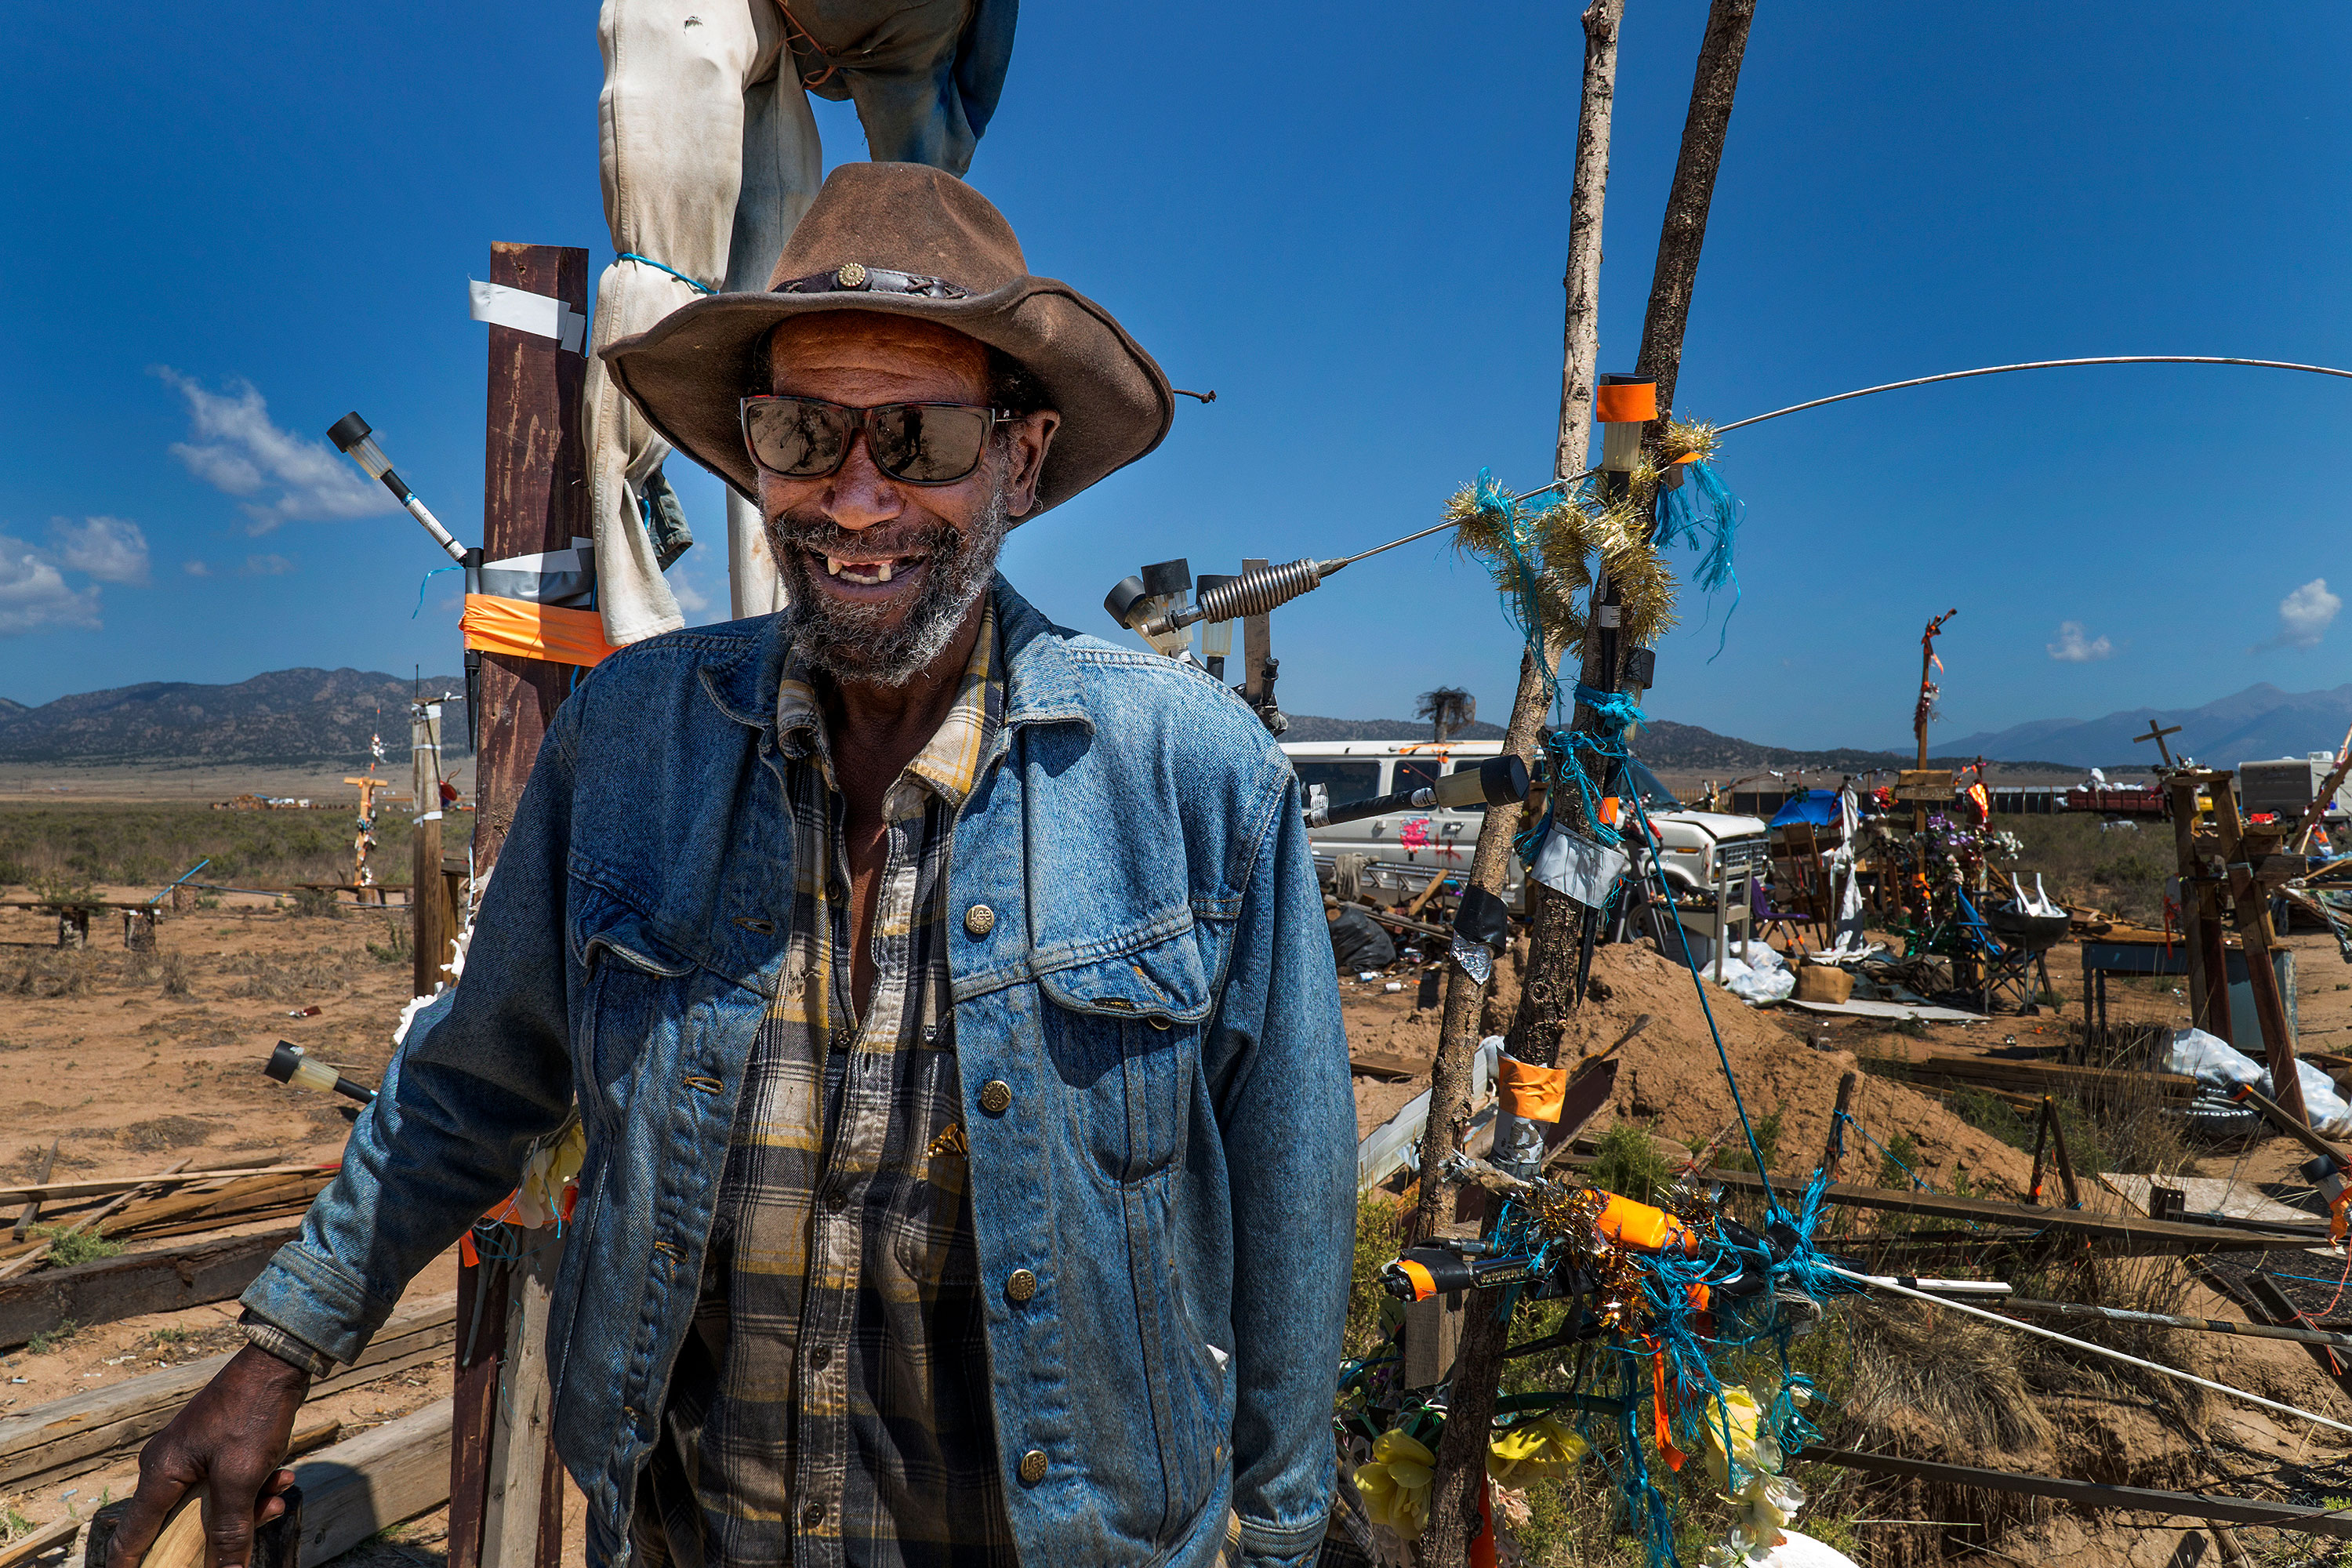 "<p>Roy L. Smith, known to many as ""Ramblin' Roy,"" at Fort Roy at Royville, about 20 minutes outside of Saguache, on July 31, 2018. He said it took him a little more than a year to build this art compound.</p>"